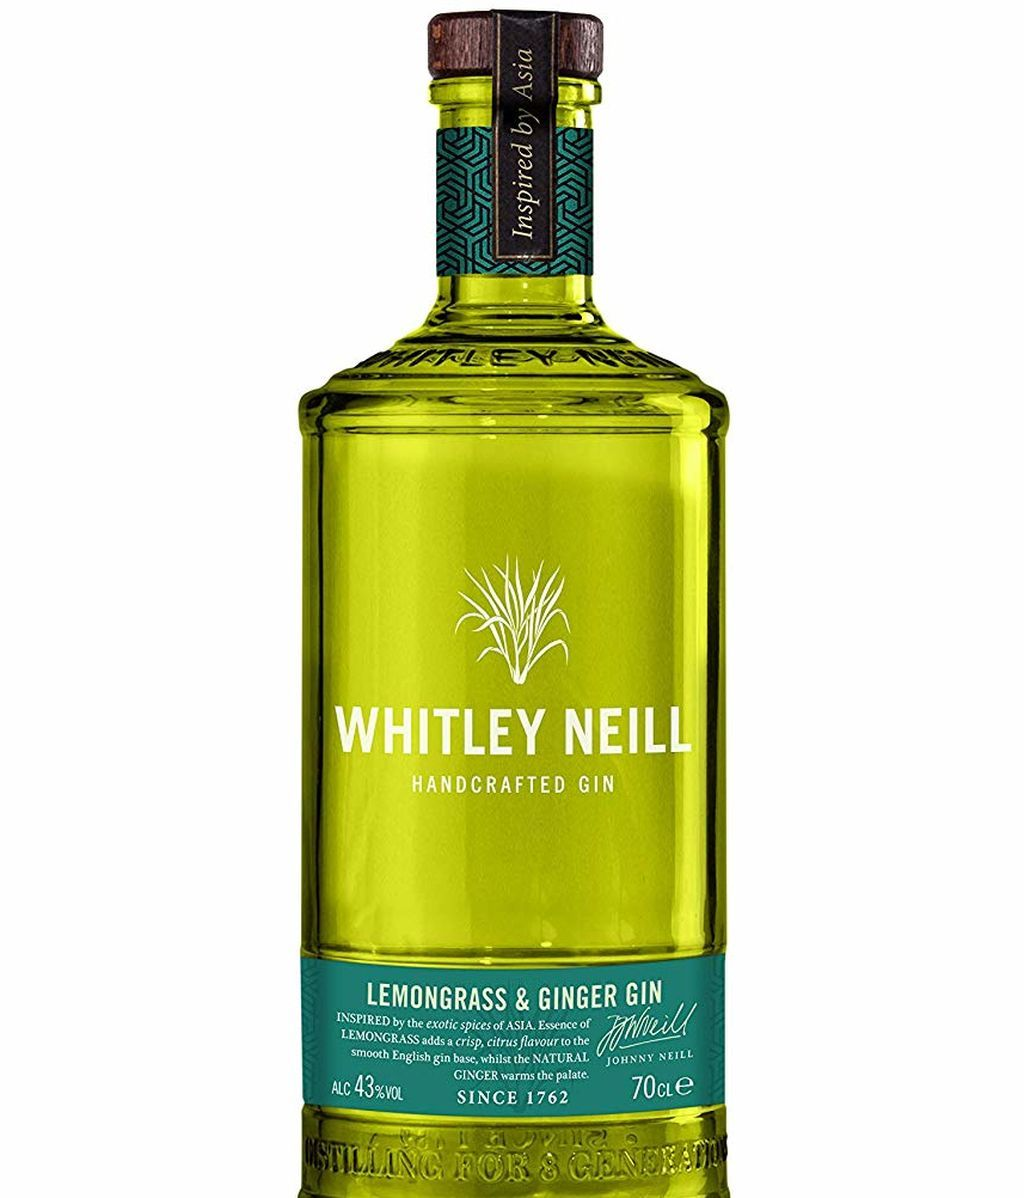 Whitley Neill Handcrafted Lemongrass and Ginger Gin